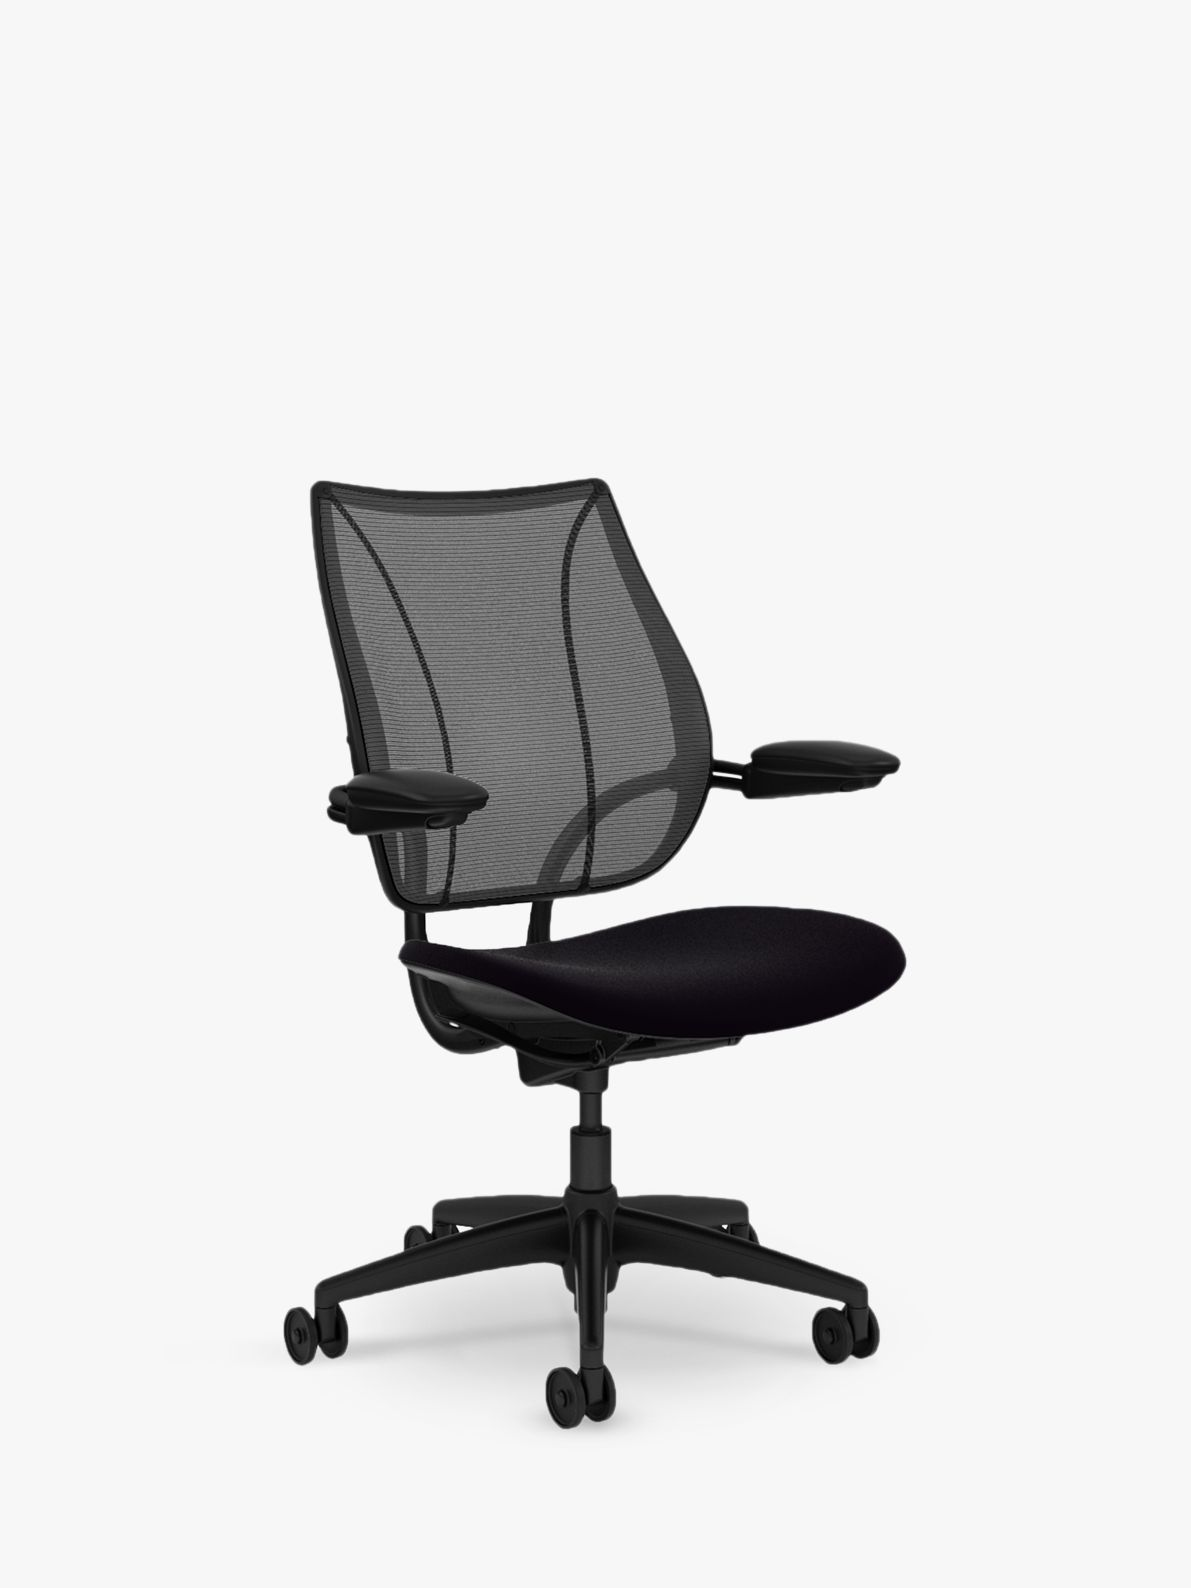 Humanscale Liberty Chair Humanscale Liberty Office Chair Black At John Lewis